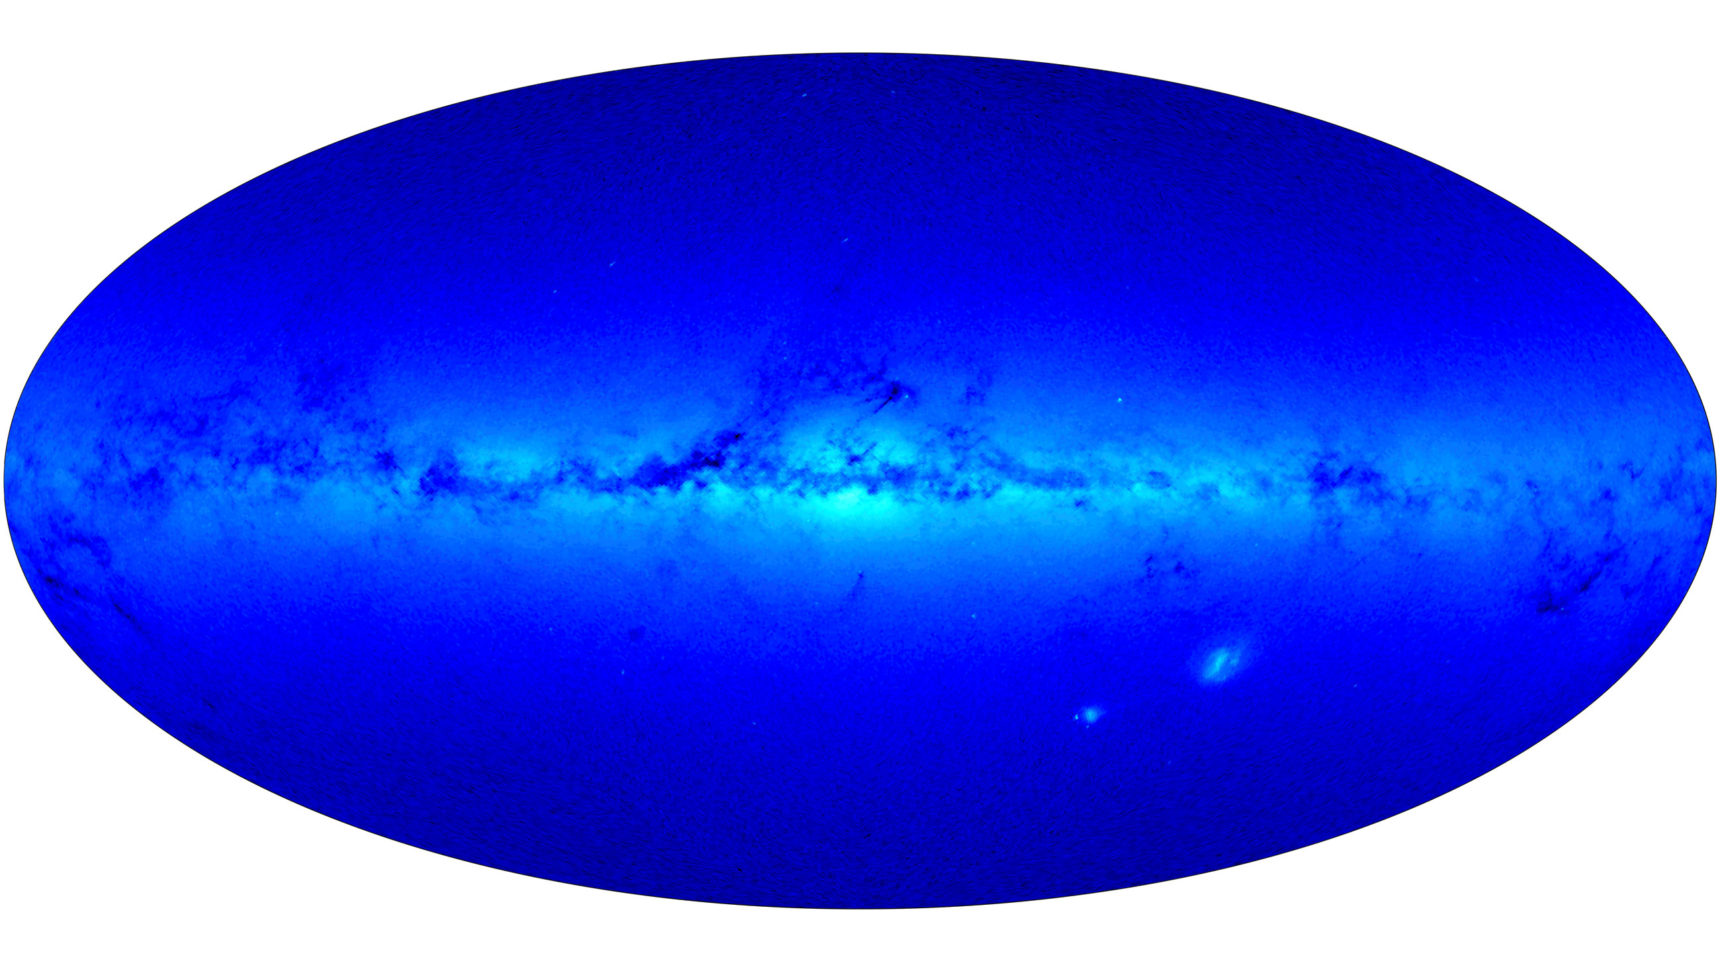 The Milky Way as seen by the Gaia satellite shows the dark clouds of dust that obscure the view of galaxies in the universe beyond.